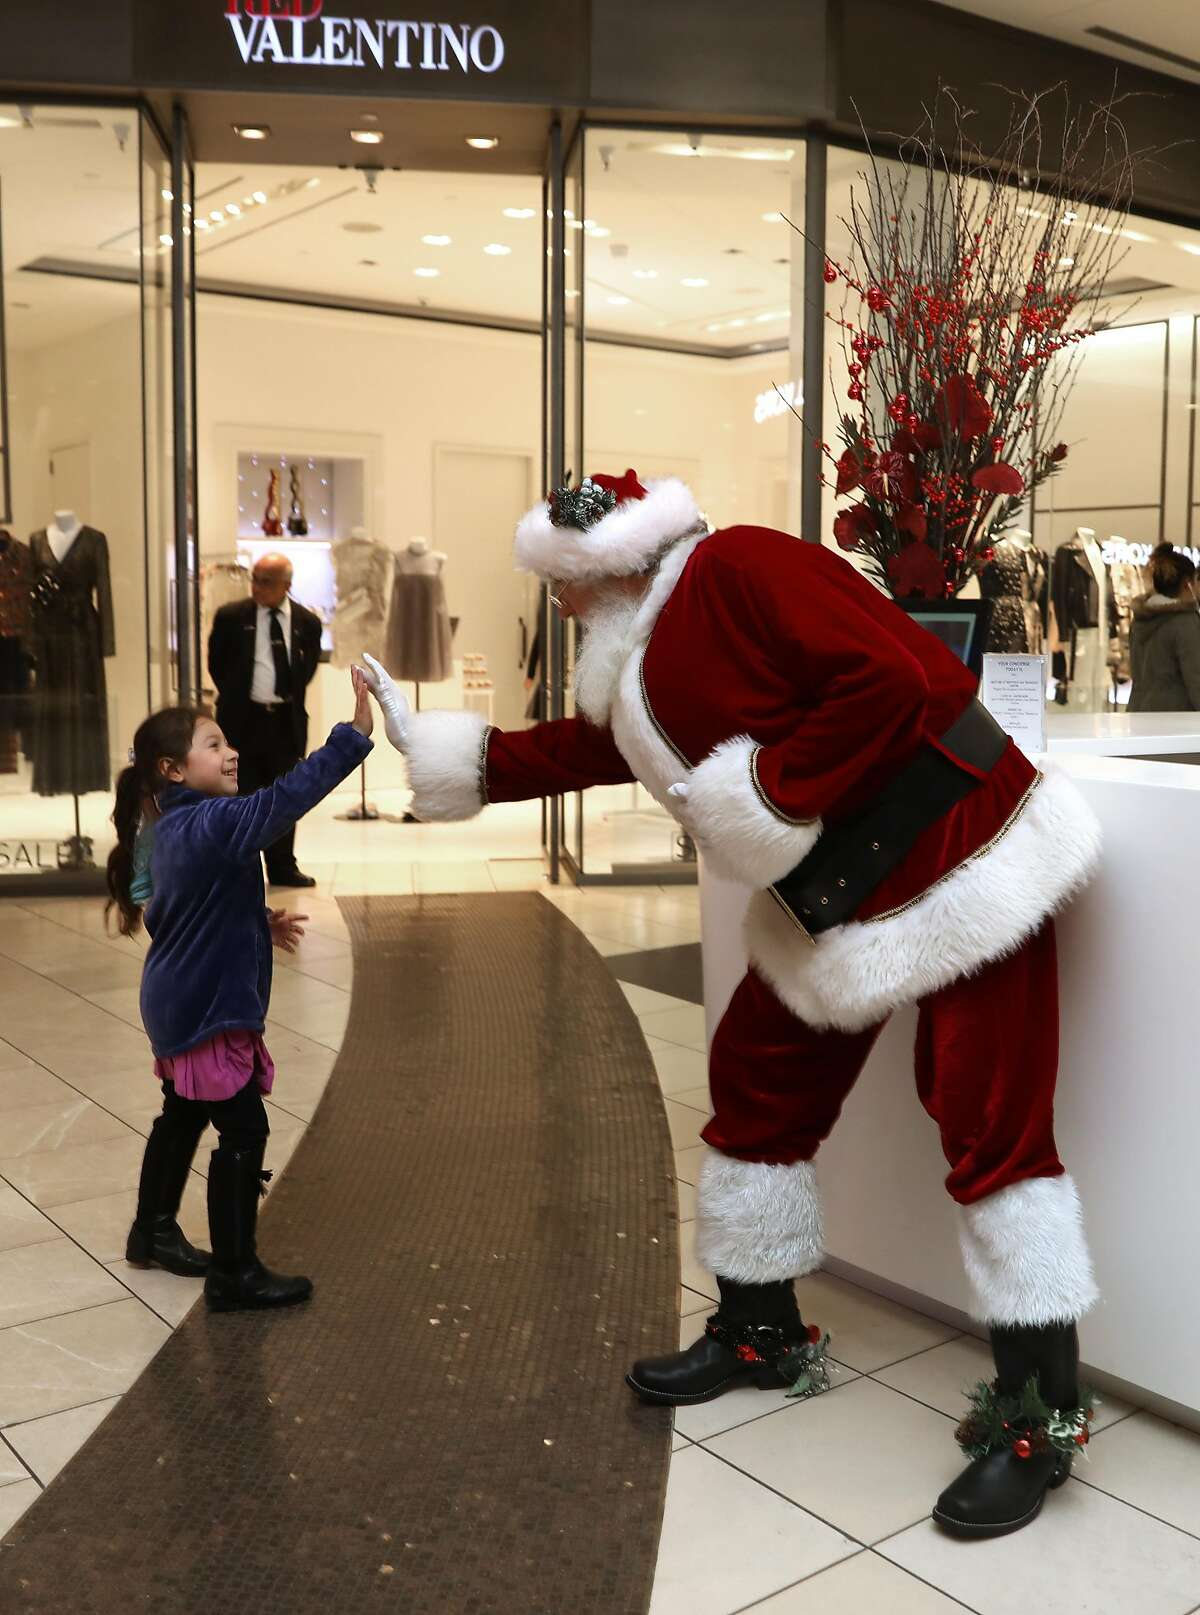 William Hackett greets Emily Ek at the Westfield San Francisco Centre. The mall encourages shoppers to use their own phones or cameras to take photos with